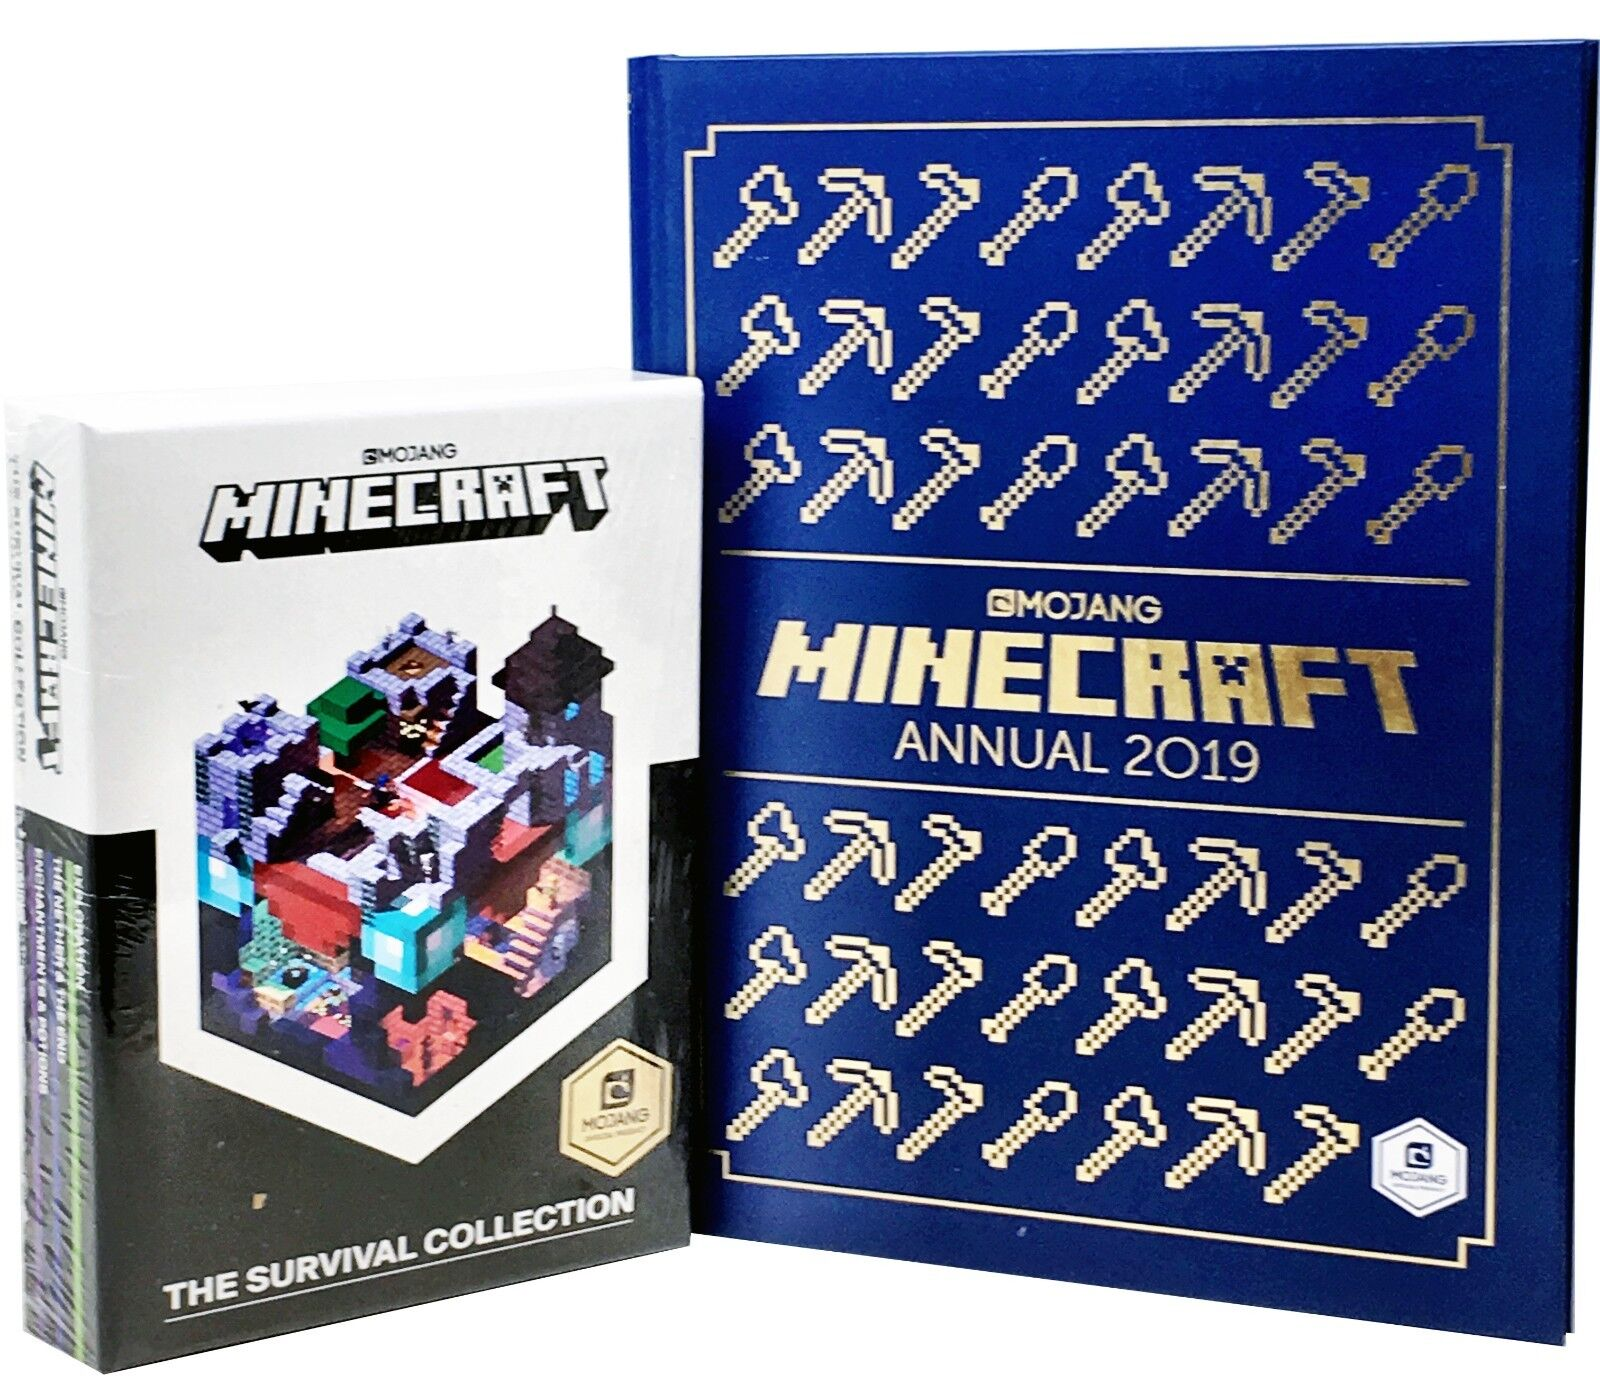 Details about Minecraft Survival Book, Minecraft Annual 2019- 5 Books  Collection Set by Mojang